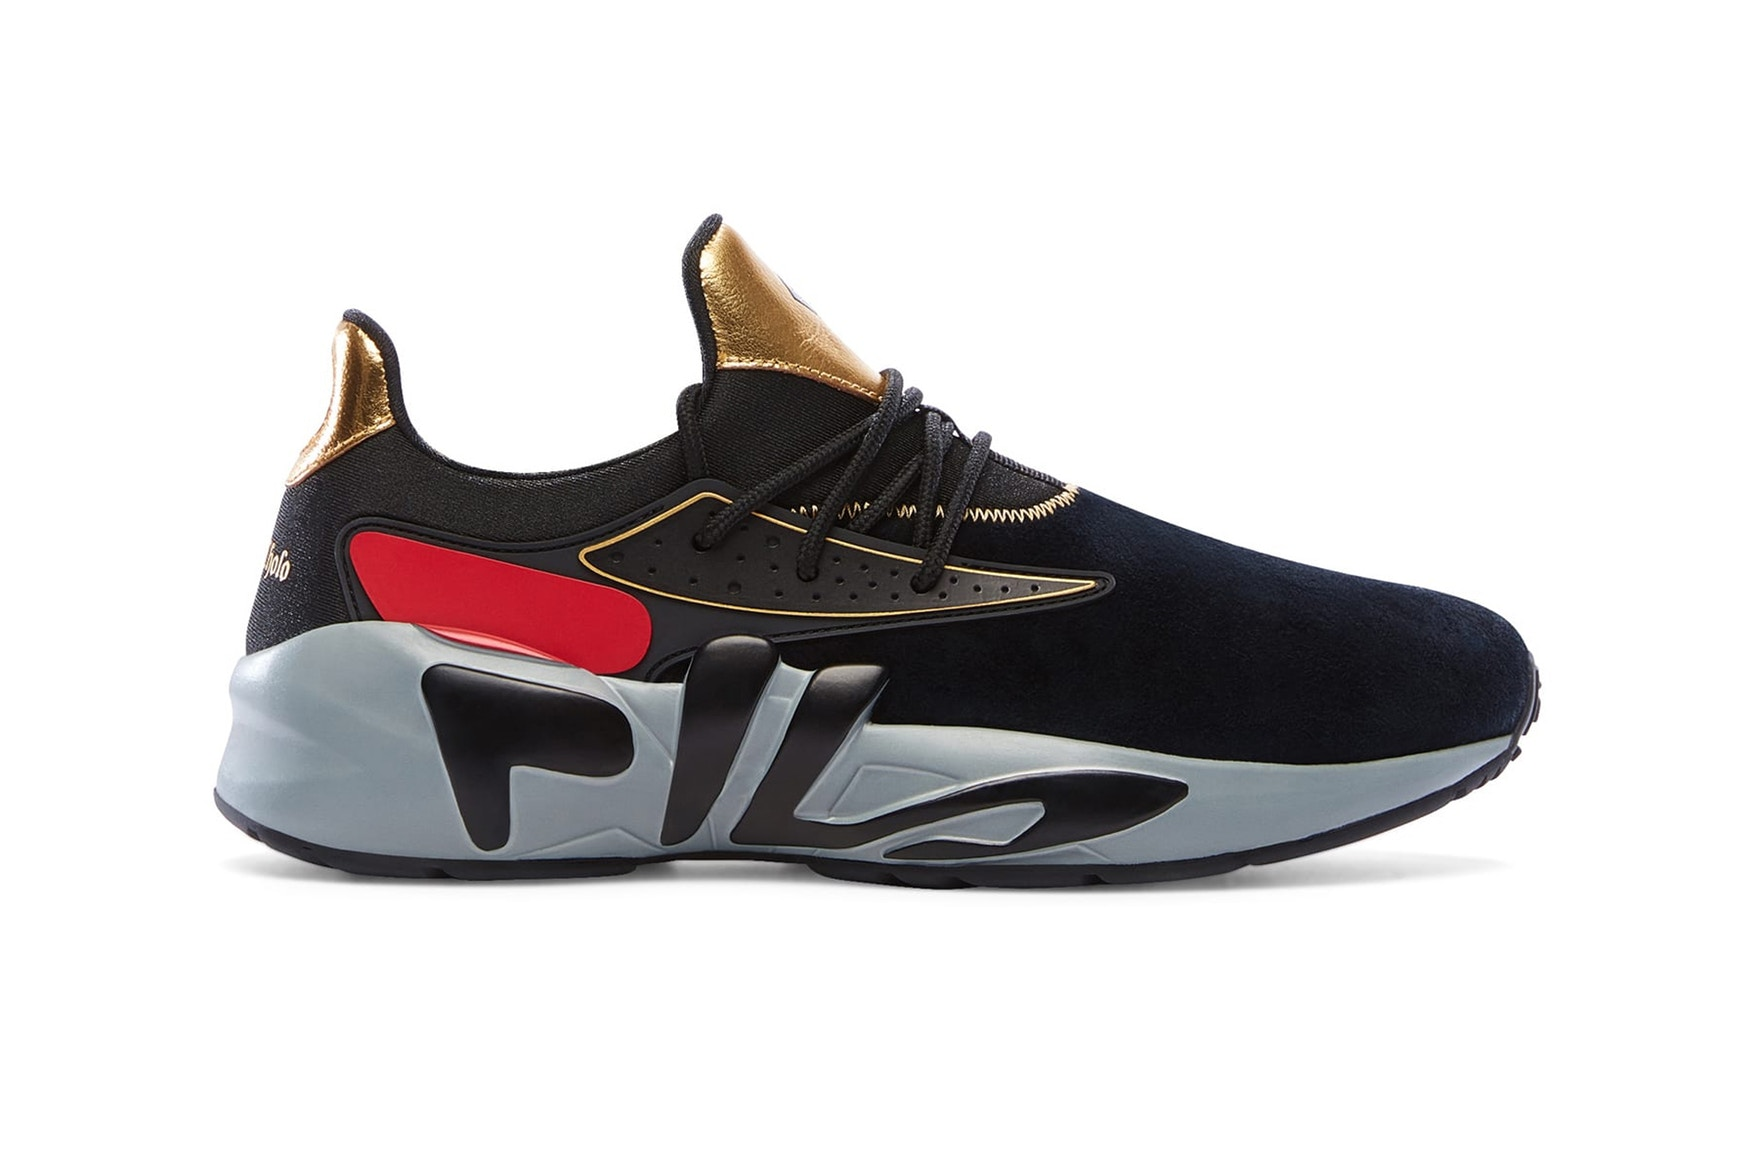 fila-revives-the-classic-mindblower-with-over-40-limited-edition-collaborations-19